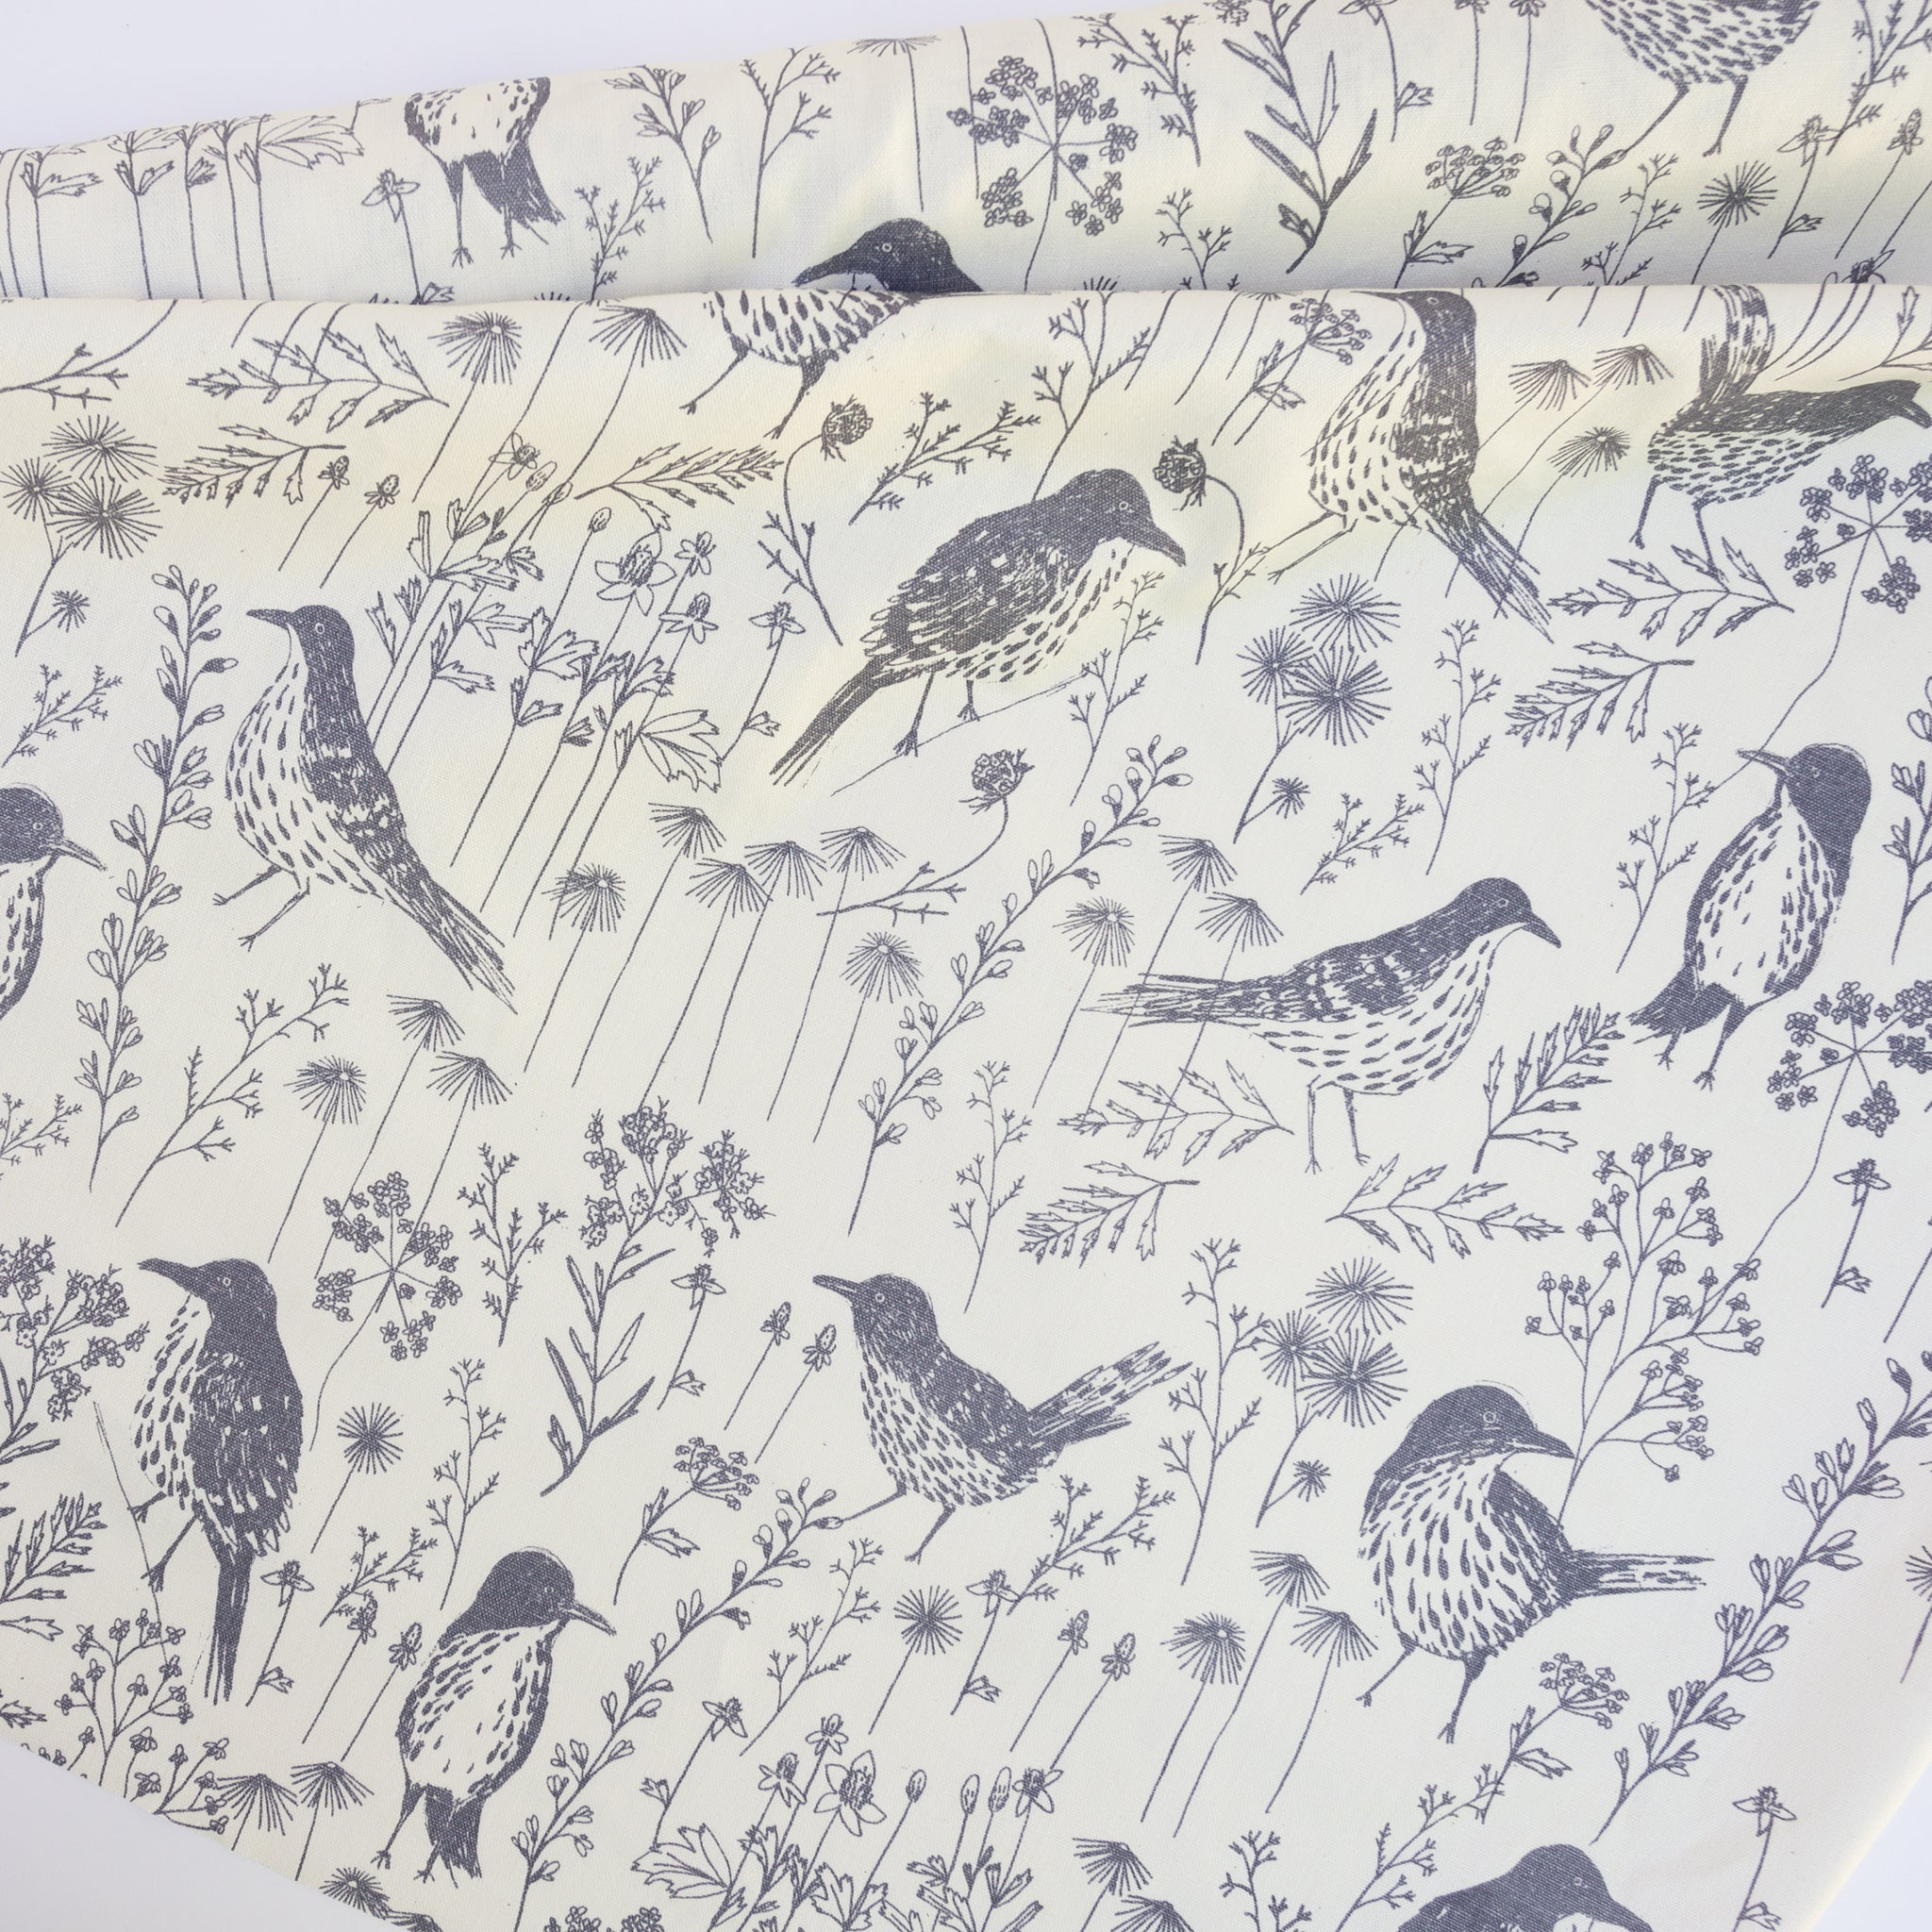 Fabric yardage screenprinted with brown thrashers